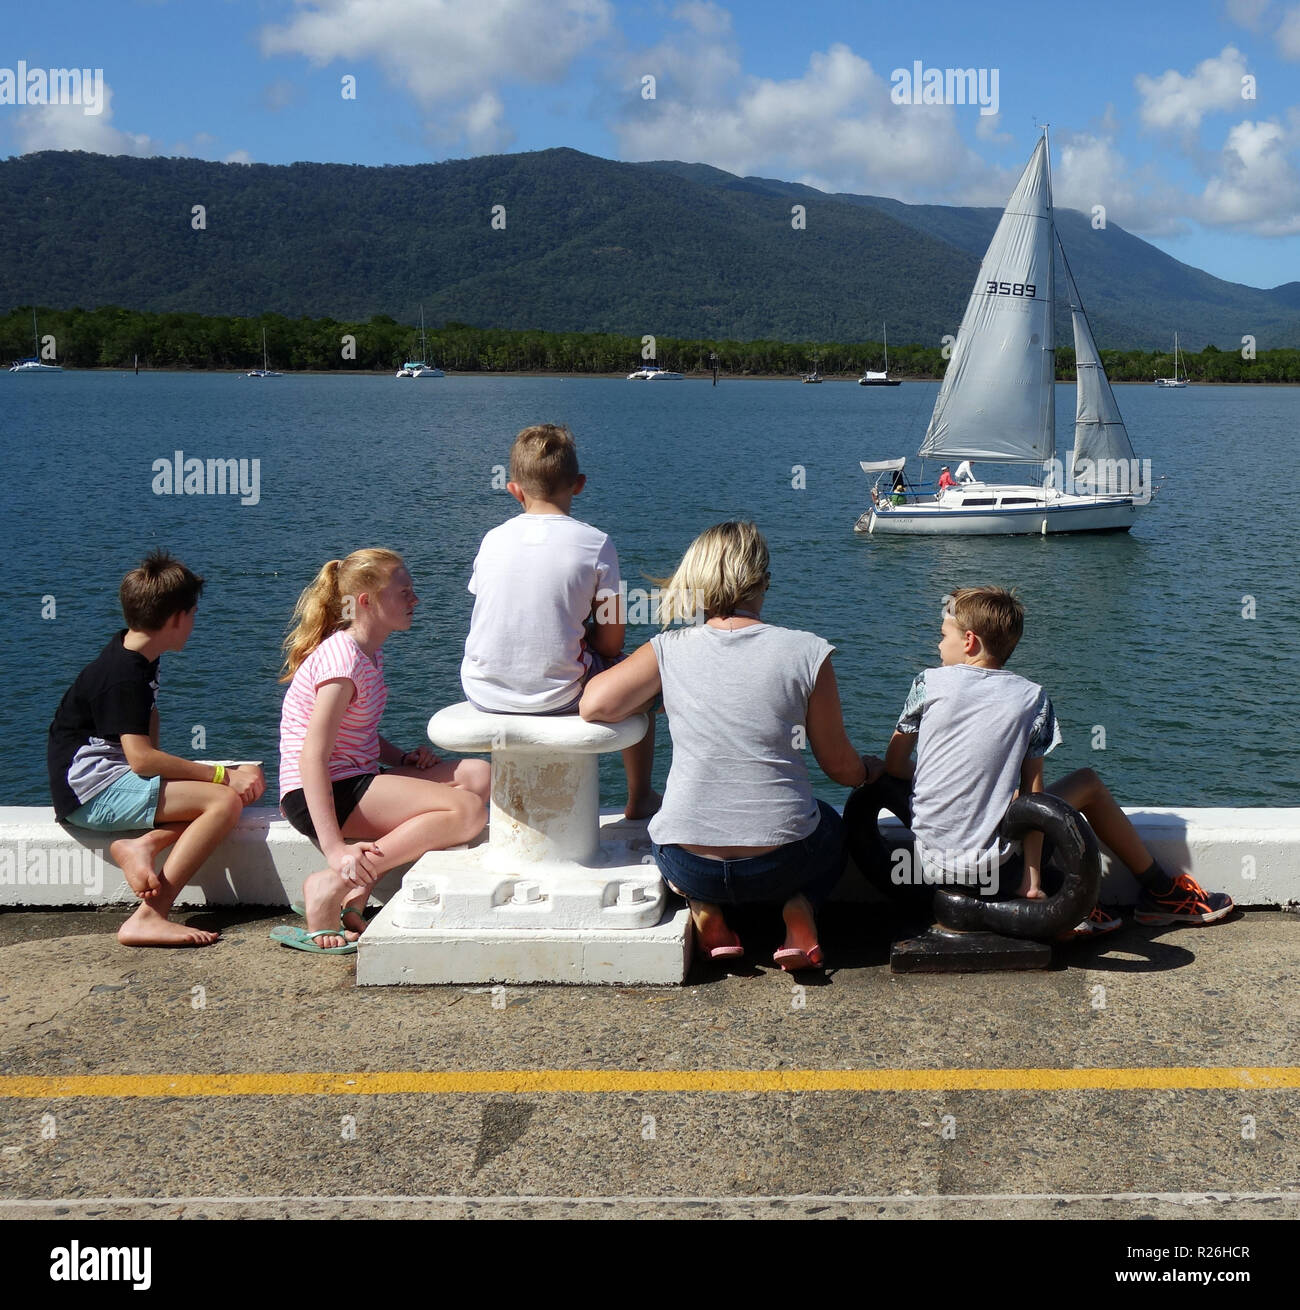 Family watching passing sailboat on Trinity Inlet, Cairns, Queensland, Australia. No MR or PR - Stock Image